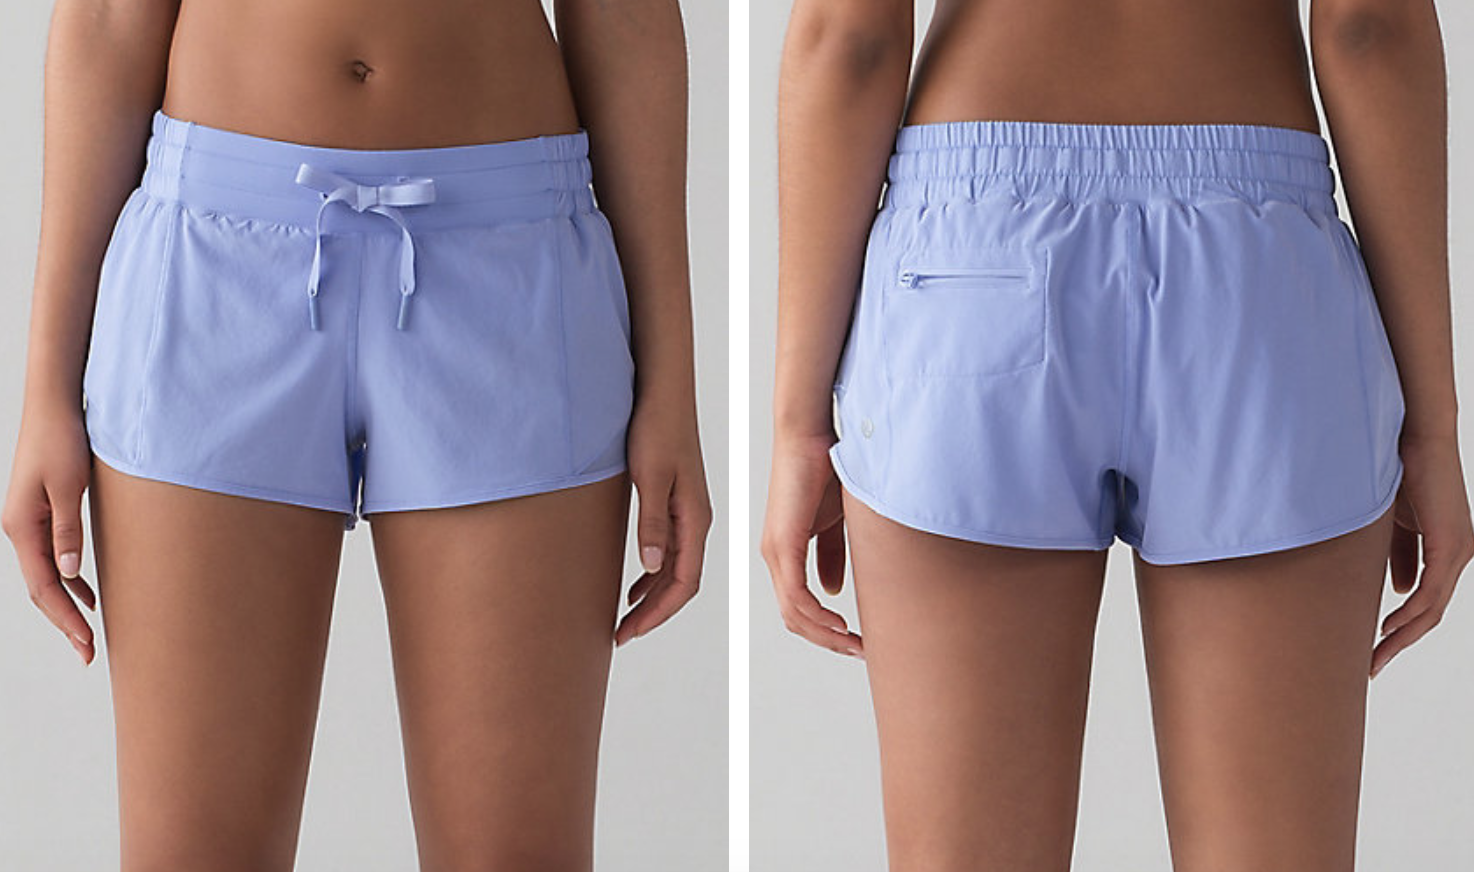 https://api.shopstyle.com/action/apiVisitRetailer?url=https%3A%2F%2Fshop.lululemon.com%2Fp%2Fwomen-shorts%2FHotty-Hot-Short%2F_%2Fprod6980004%3Frcnt%3D35%26N%3D1z13ziiZ7vf%26cnt%3D76%26color%3DLW7ACTR_028958&site=www.shopstyle.ca&pid=uid6784-25288972-7